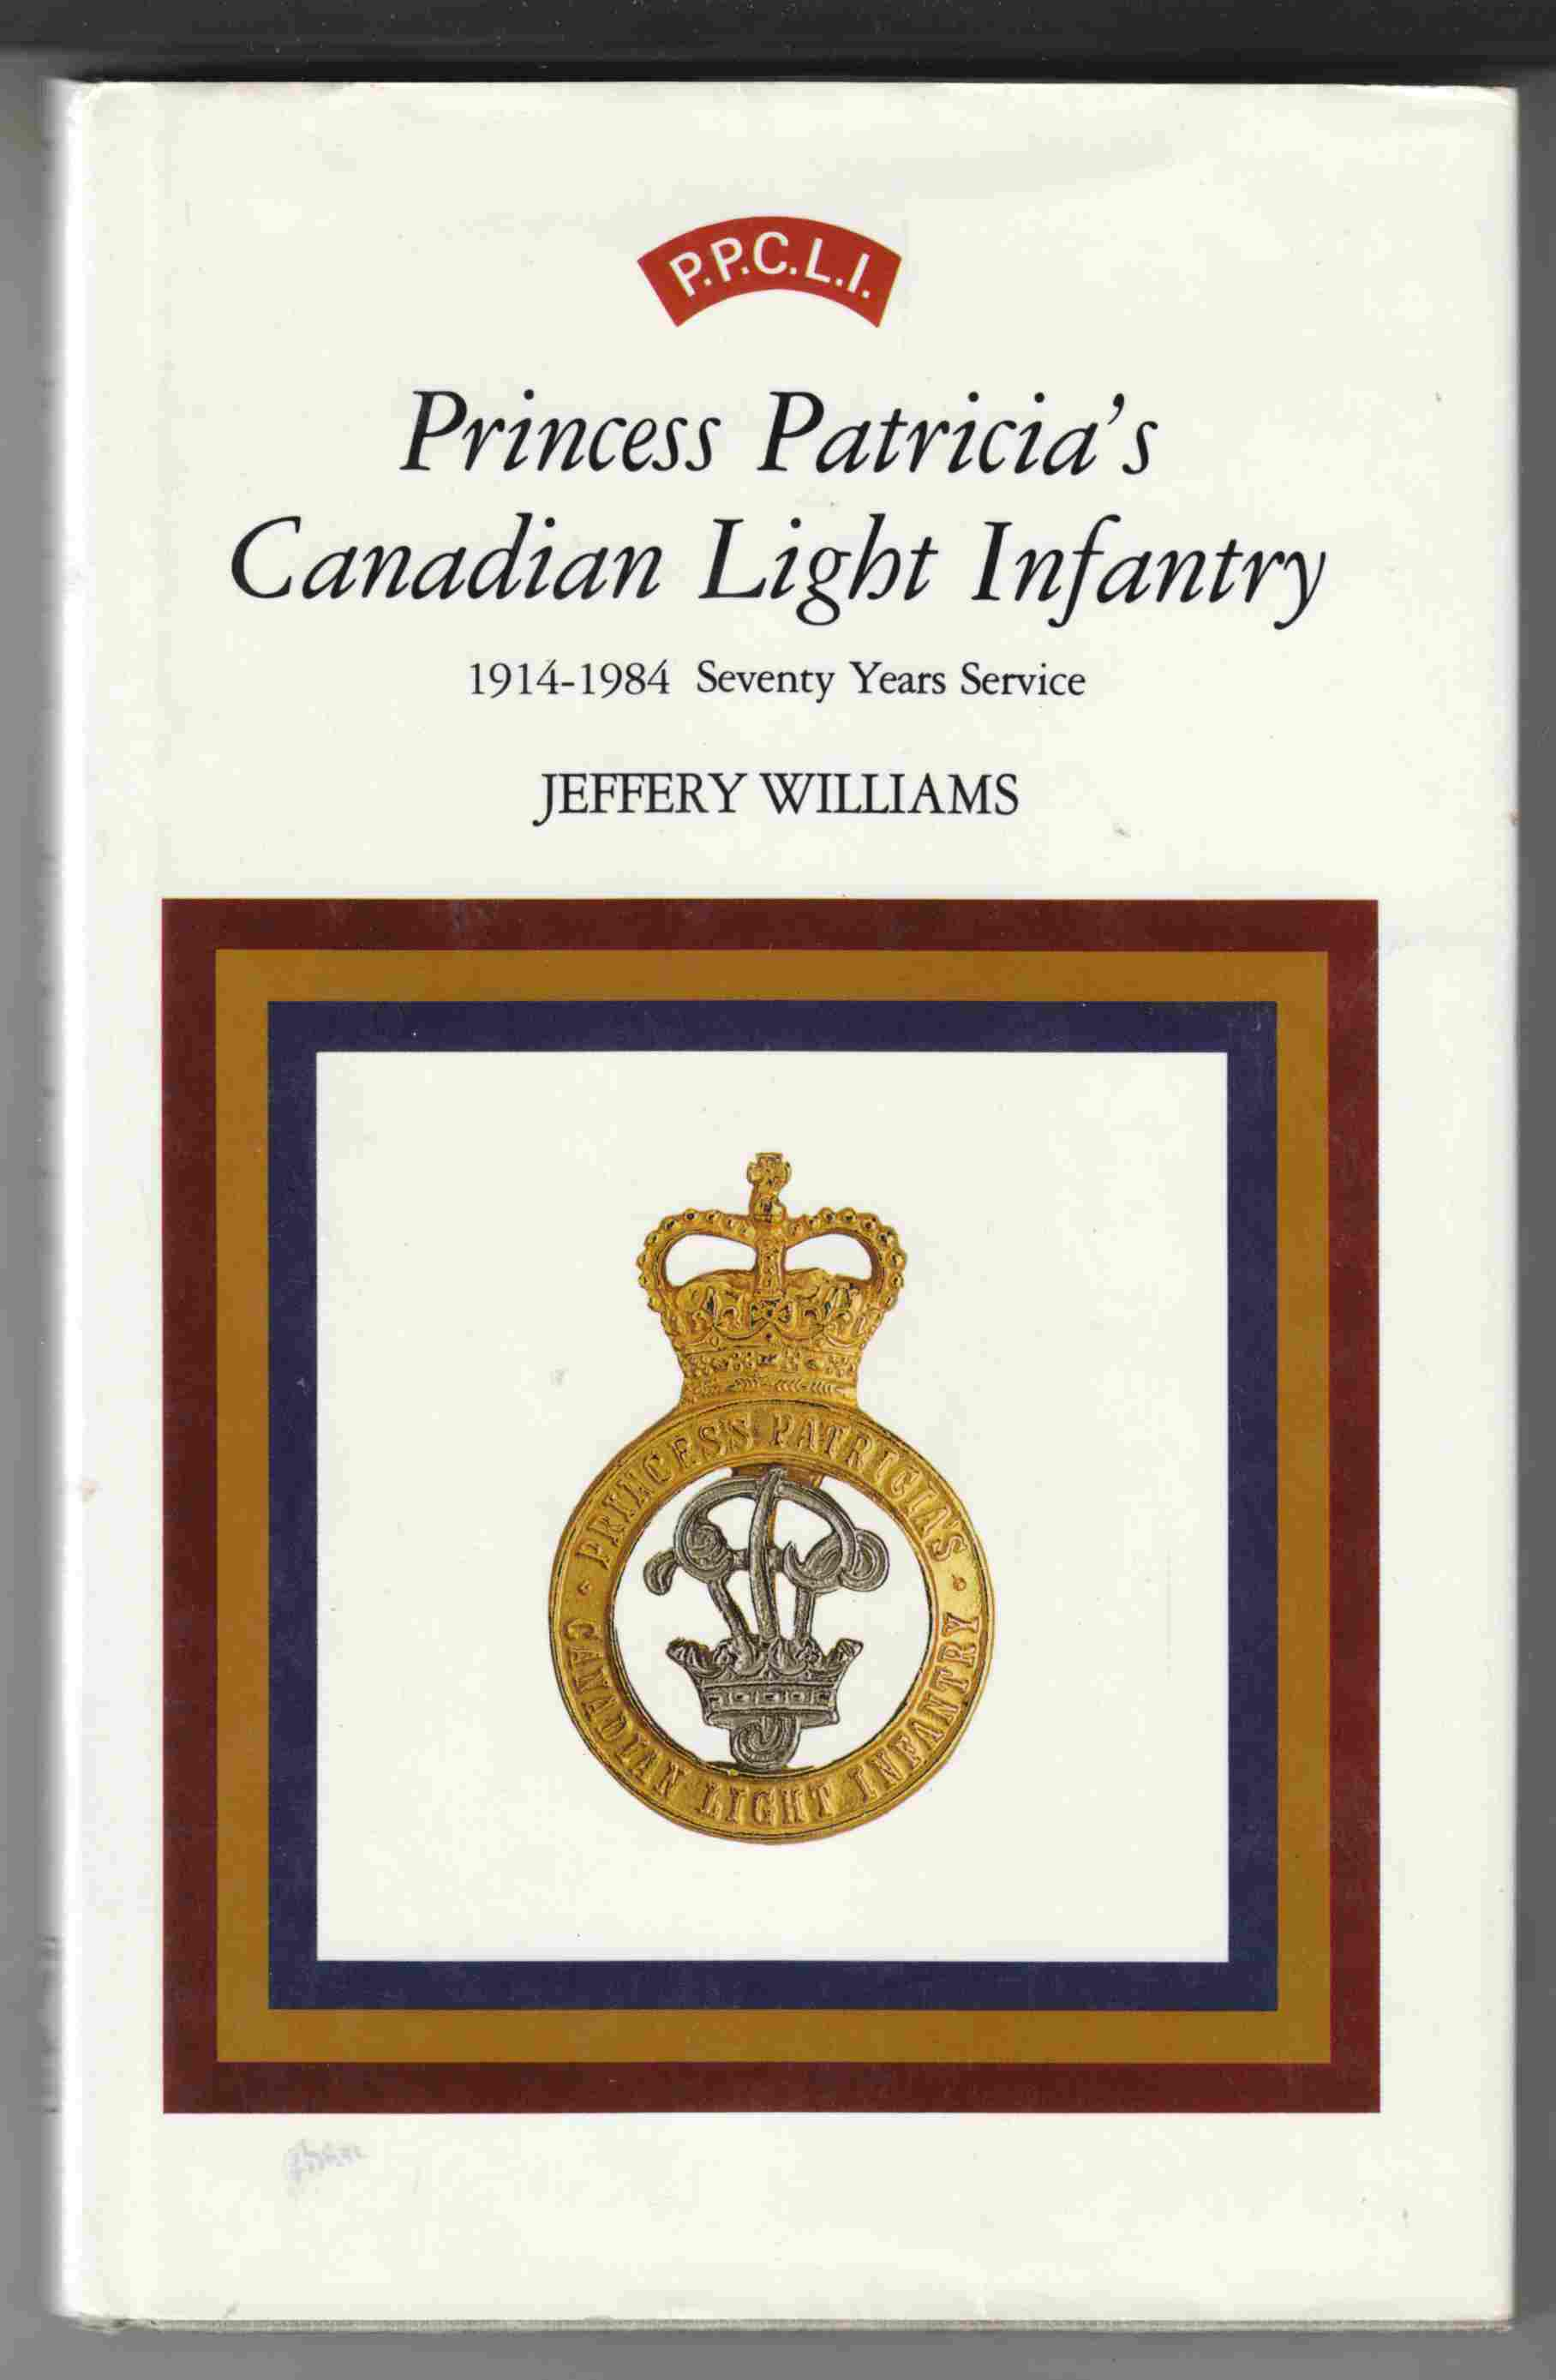 Image for Princess Patricia's Canadian Light Infantry 1914-1984 Seventy Years Service